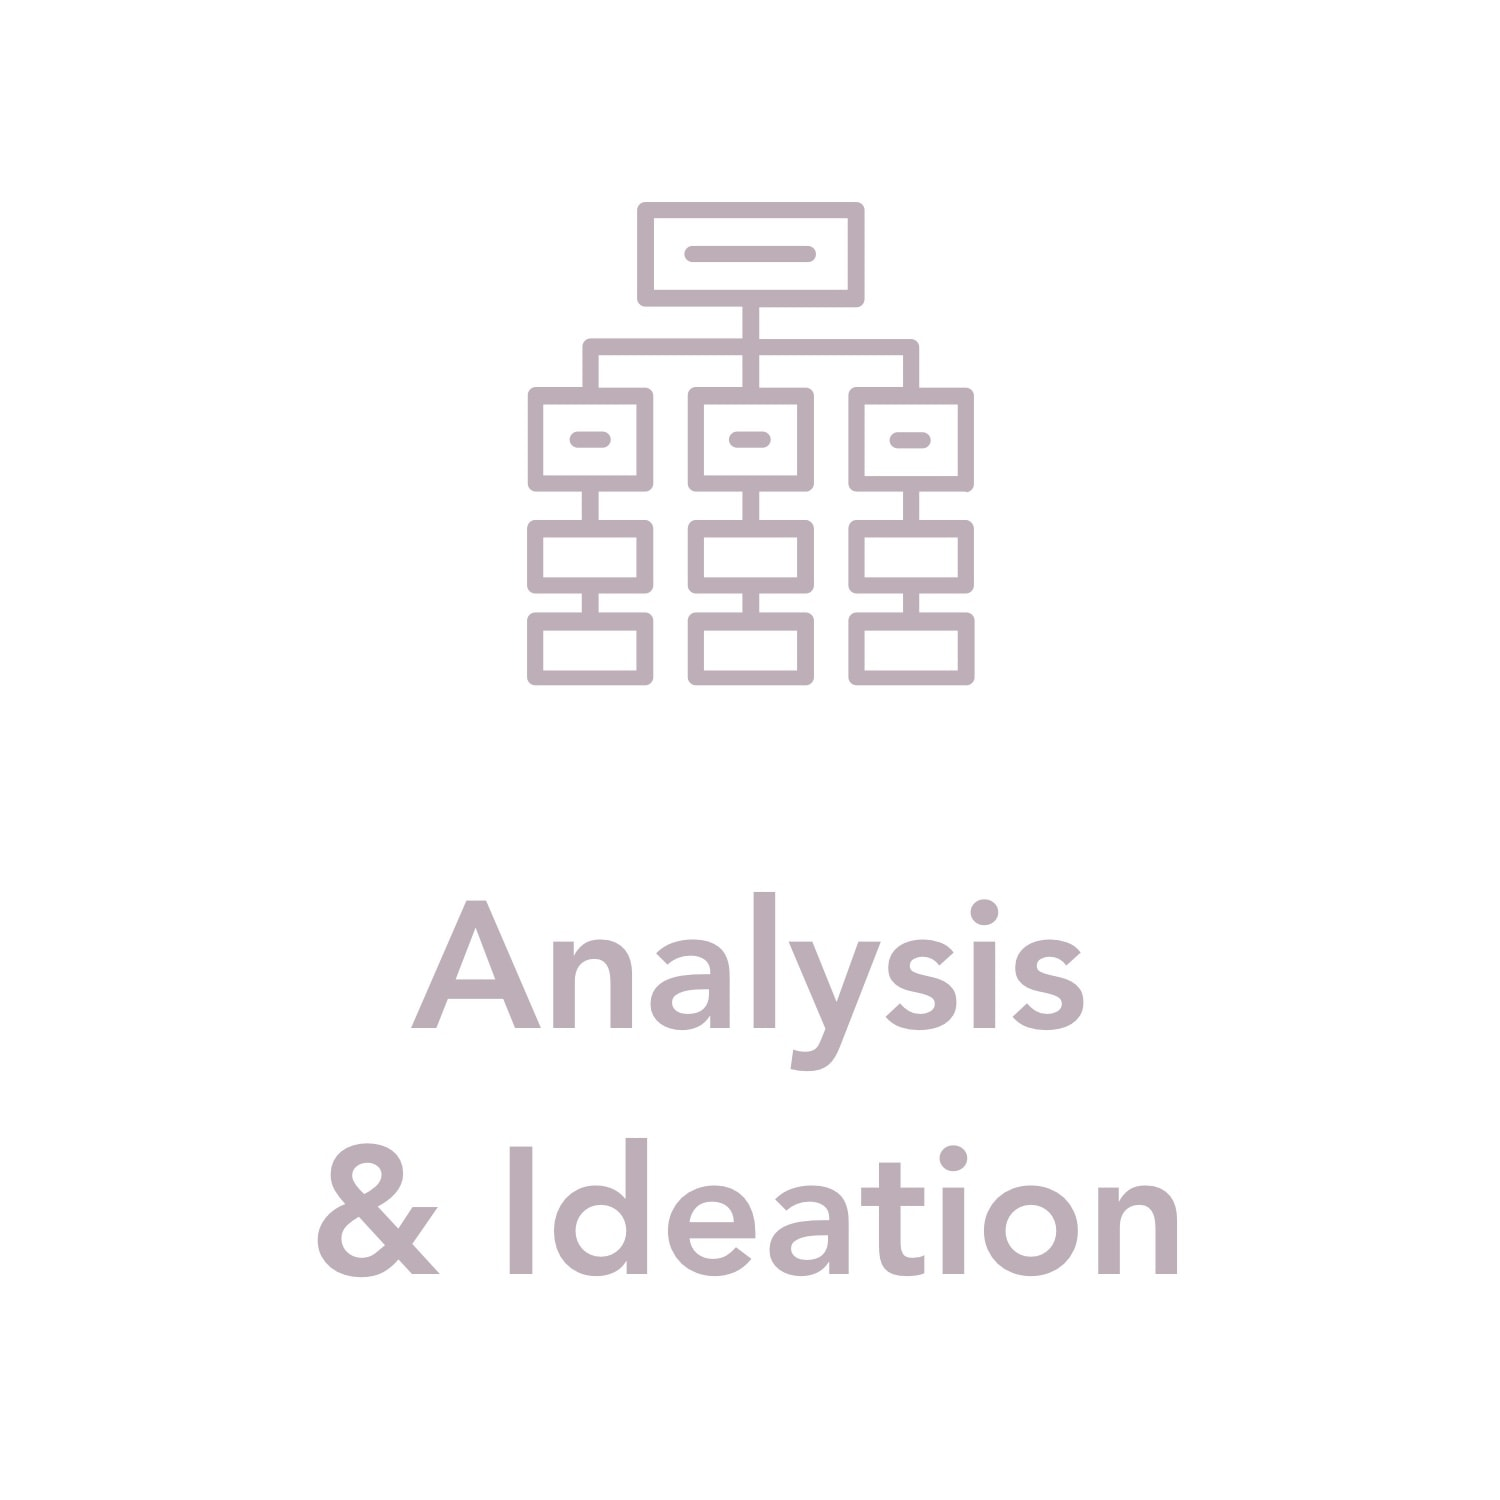 Step 2: Analysis & Ideation